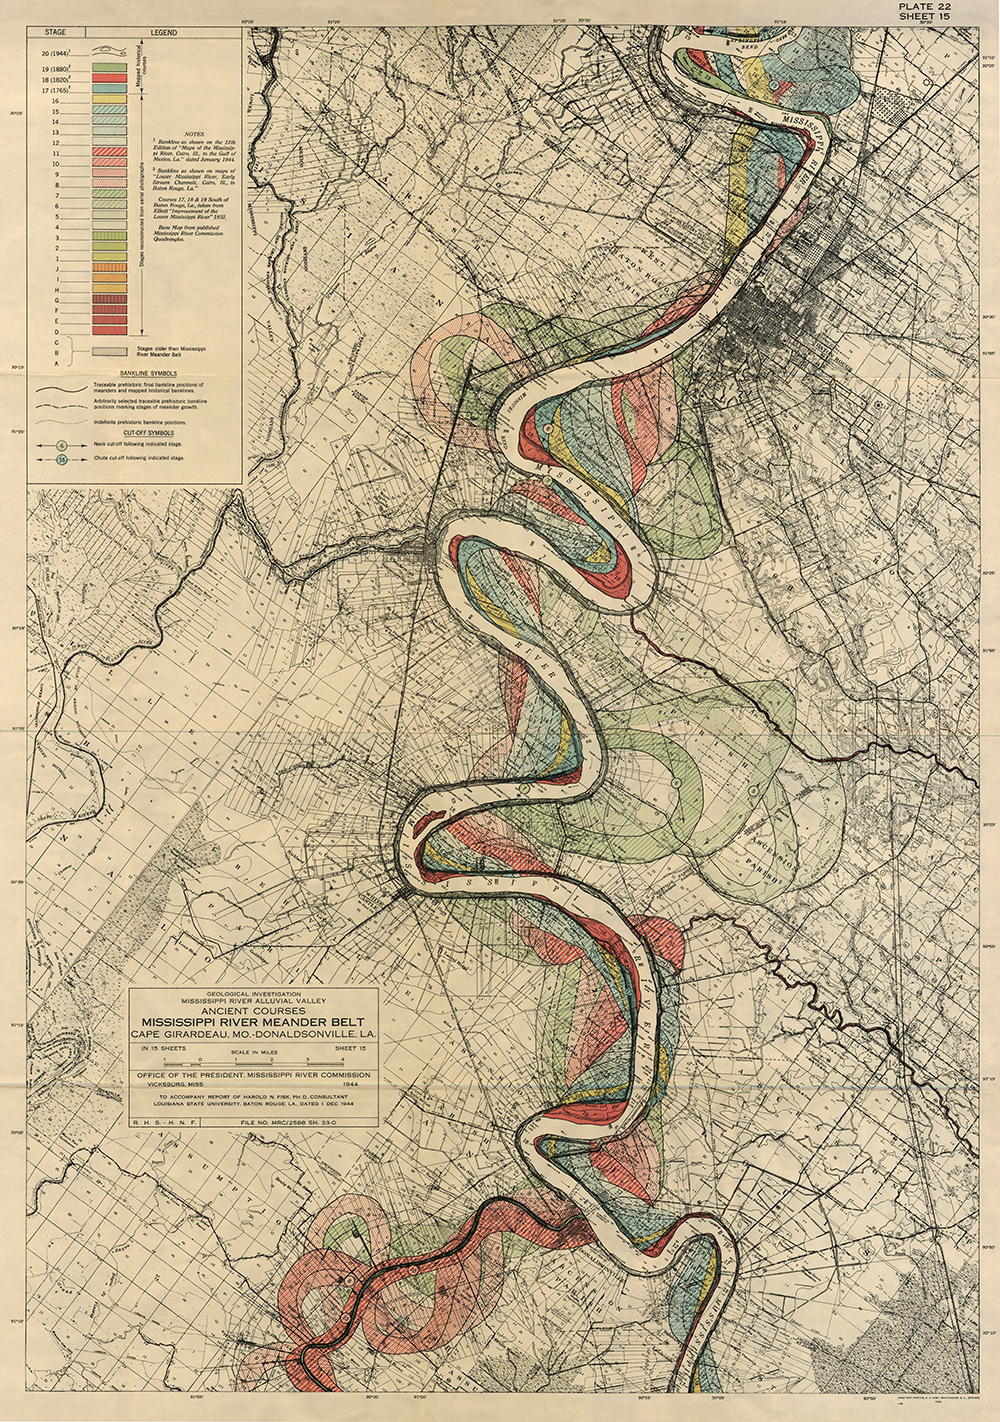 Plate 22, Sheet 15, Ancient Courses Mississippi River Meander Belt